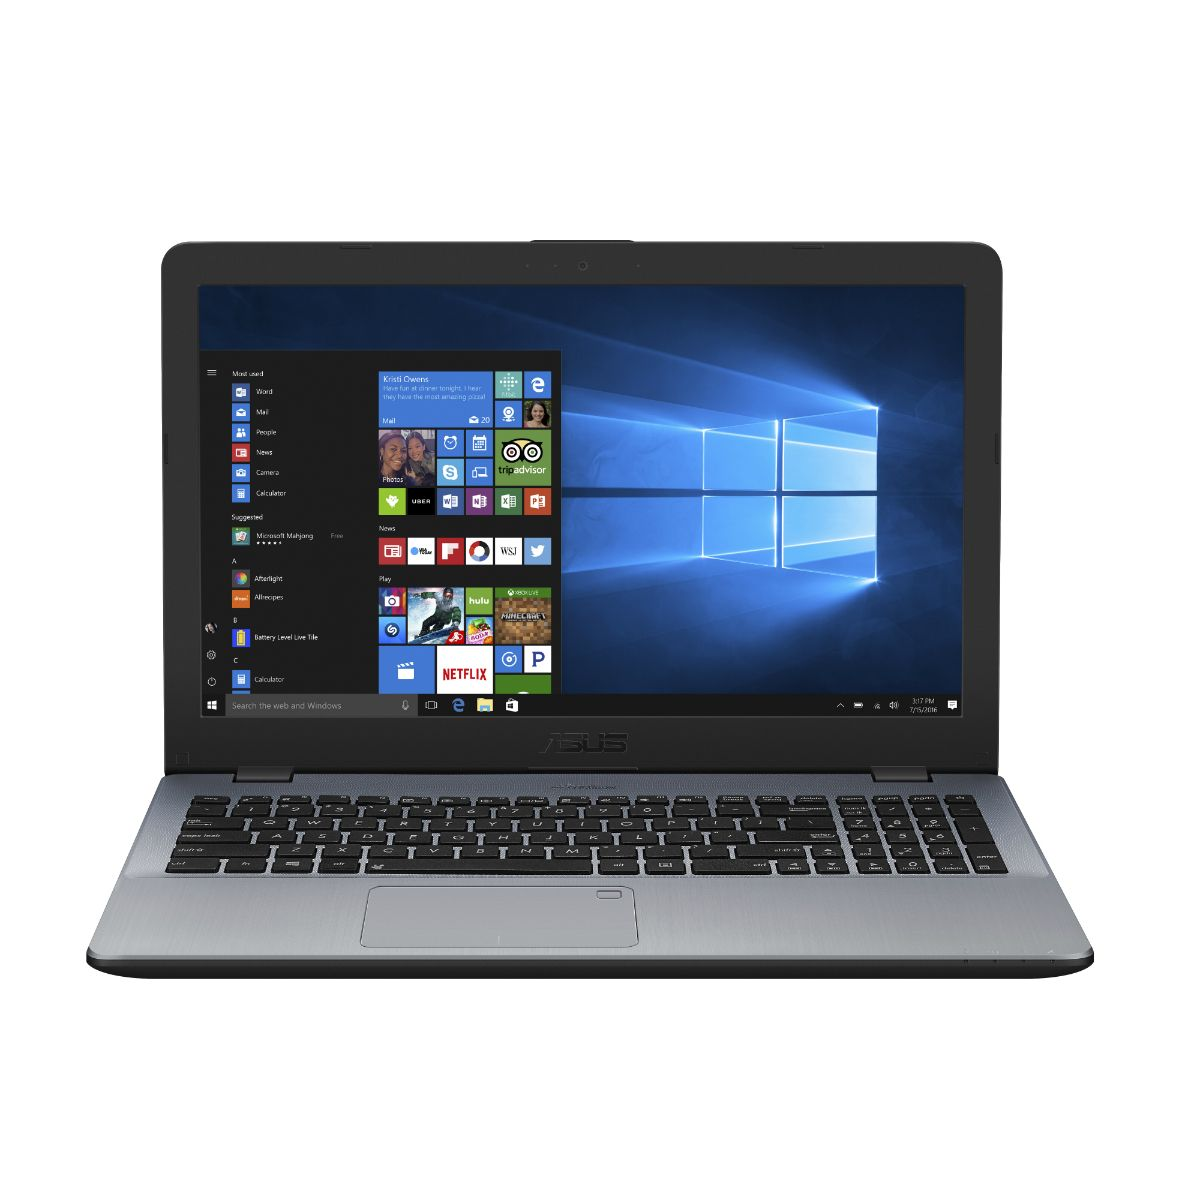 Notebook Asus X542uf-go123t Core I5 W10 Gris